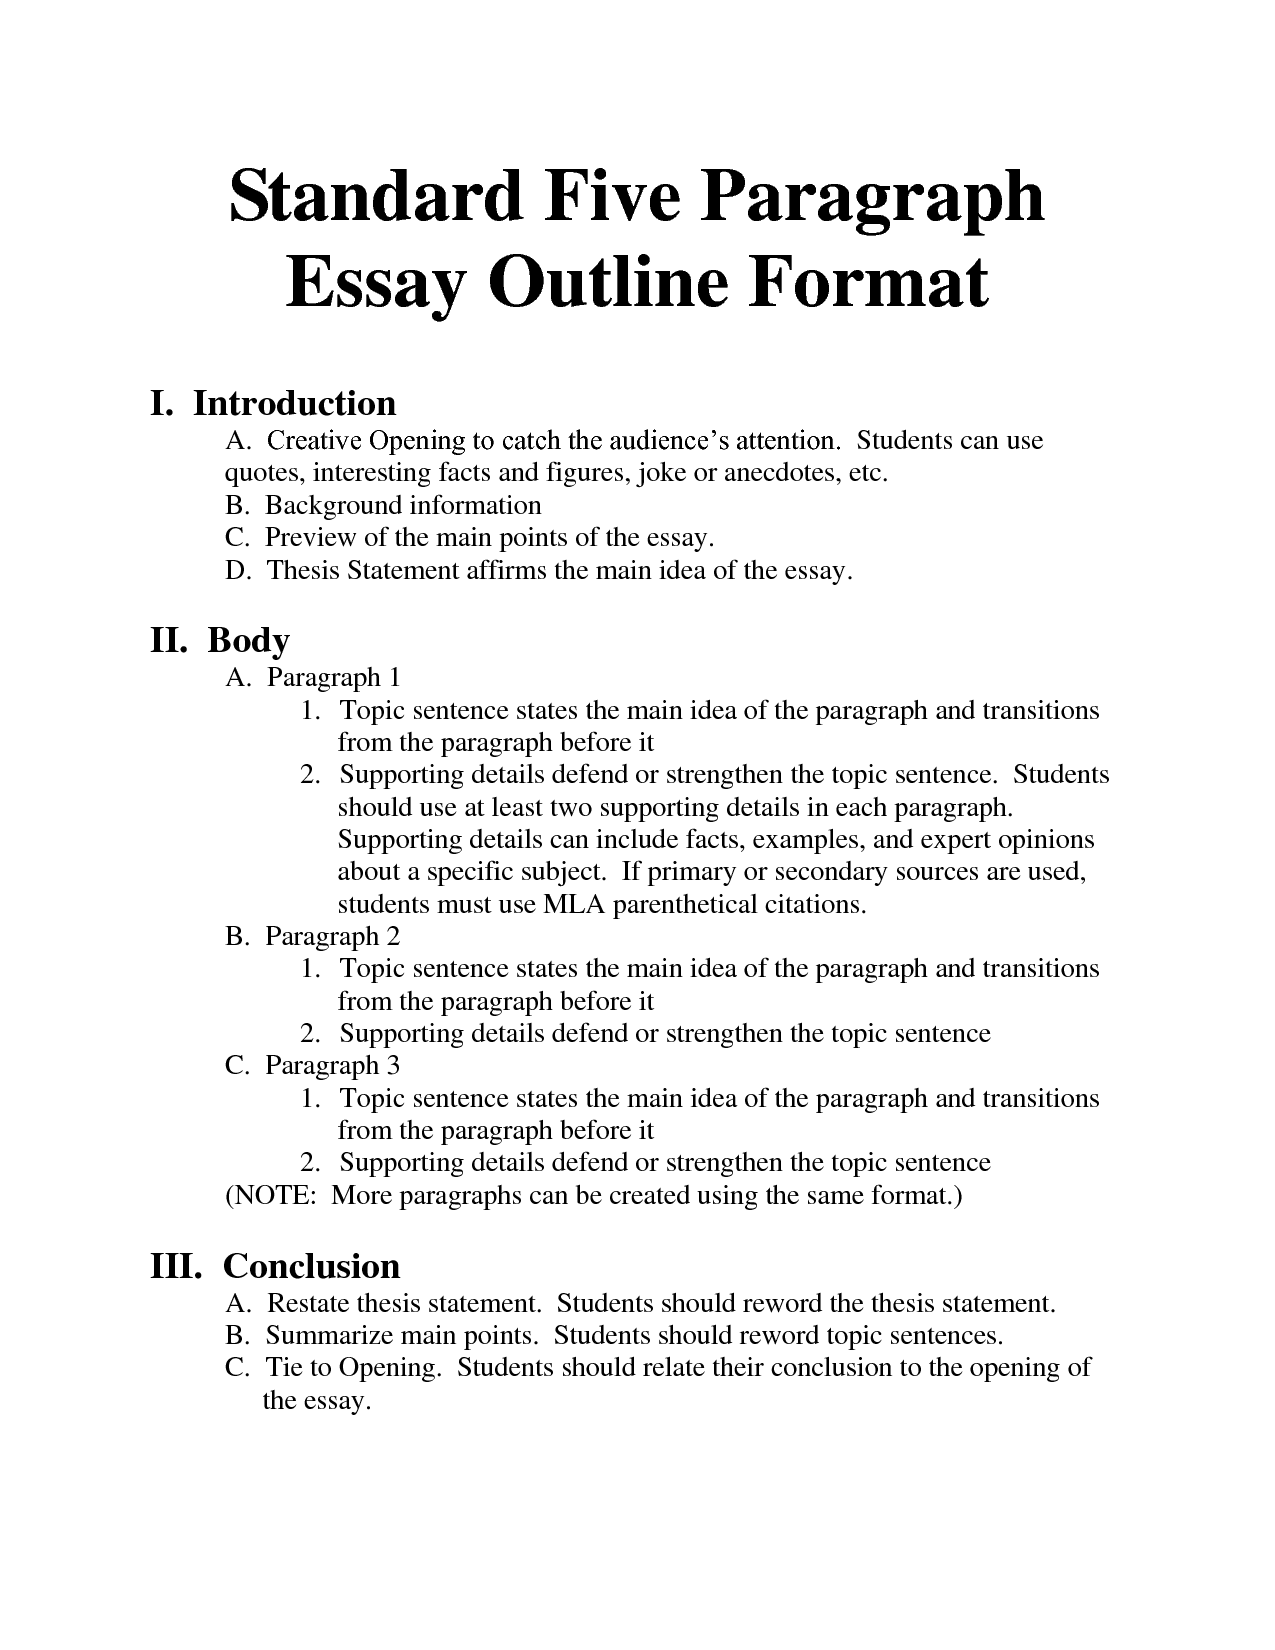 Topics Of Essays For High School Students  Extended Essay Topics English also Short English Essays For Students Standard Essay Format  Bing Images  Essays Homeschool  Personal Essay Thesis Statement Examples